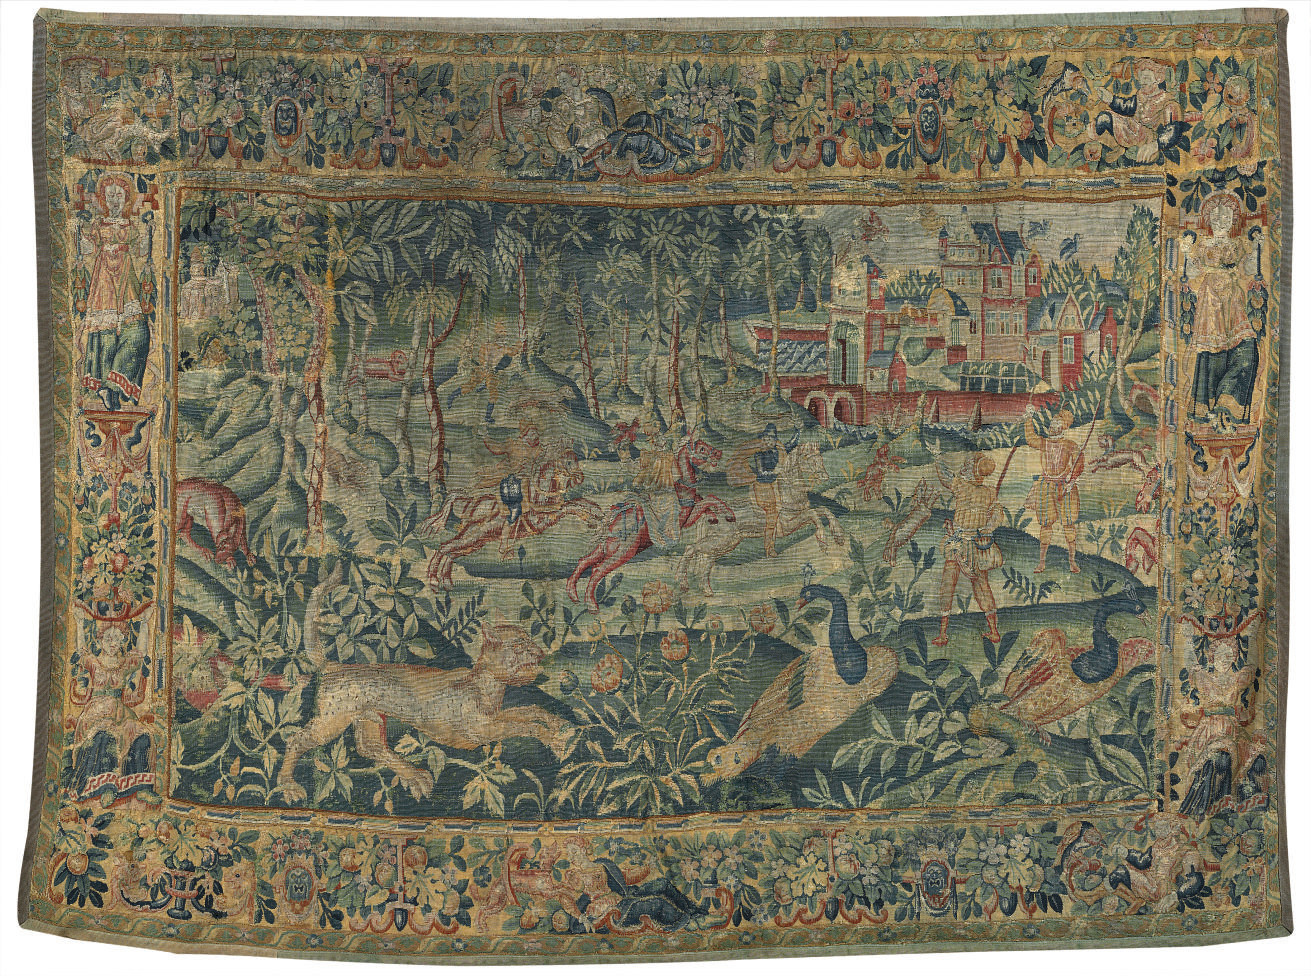 A FLEMISH GAME PARK TAPESTRY